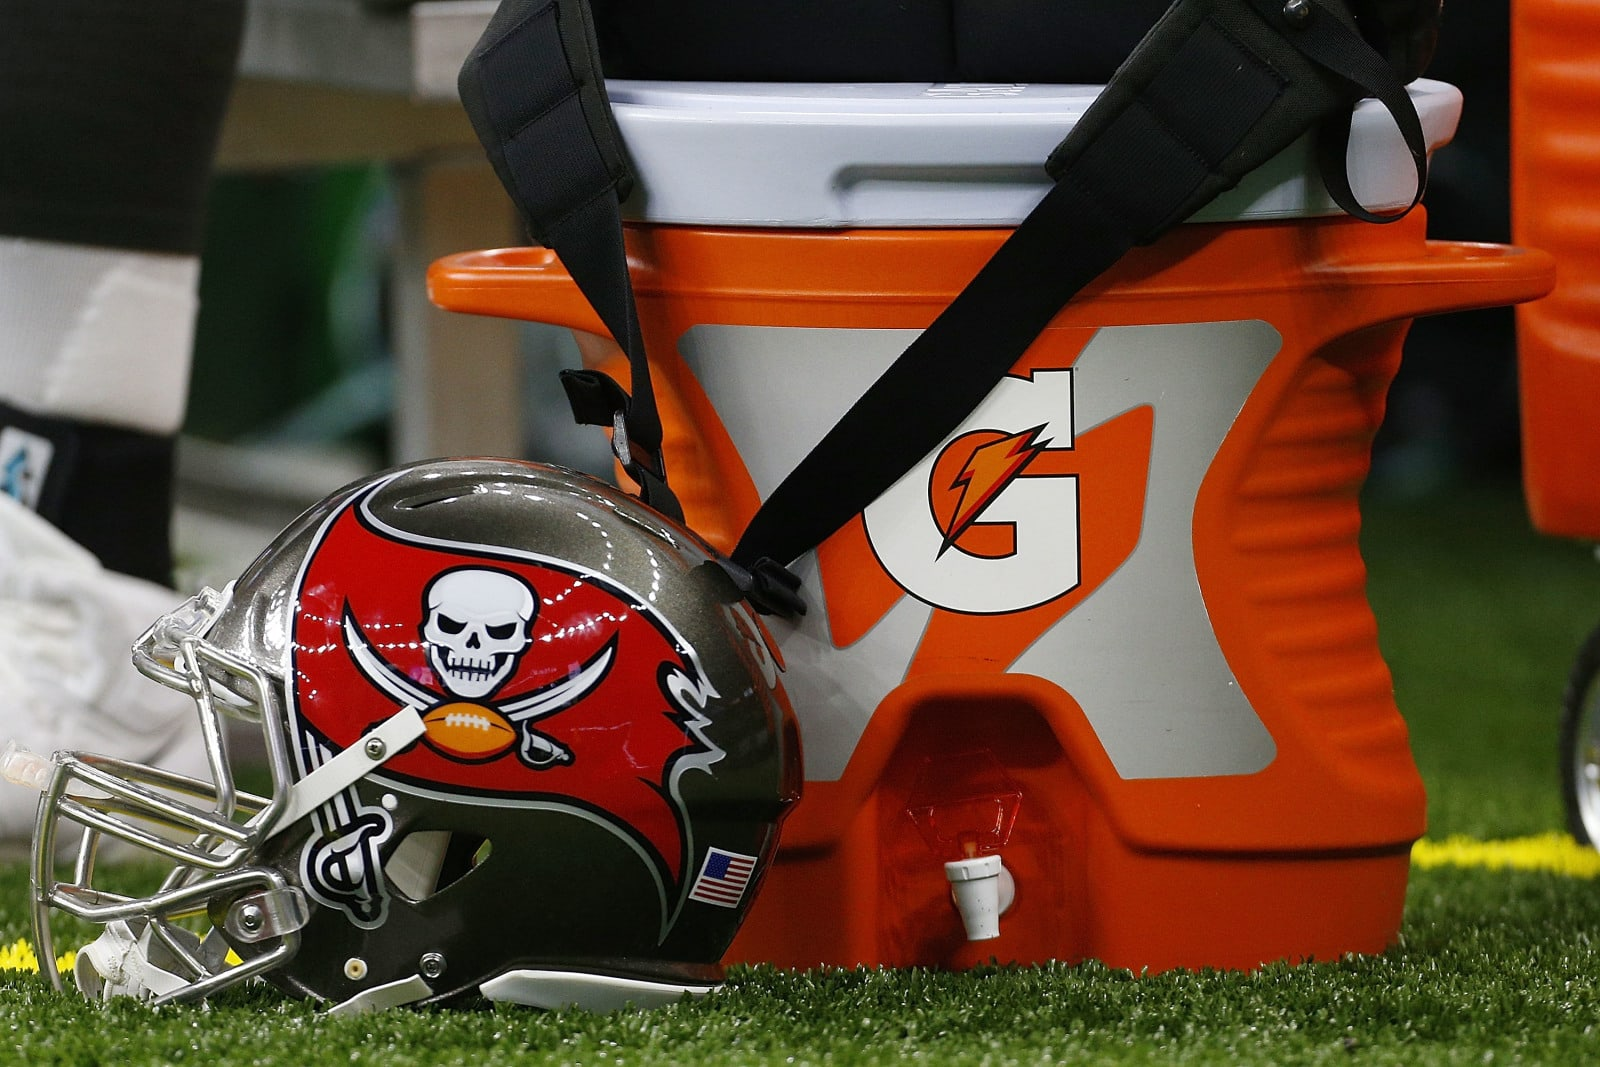 Tampa Bay Buccaneers, (Photo by Jonathan Bachman/Getty Images)